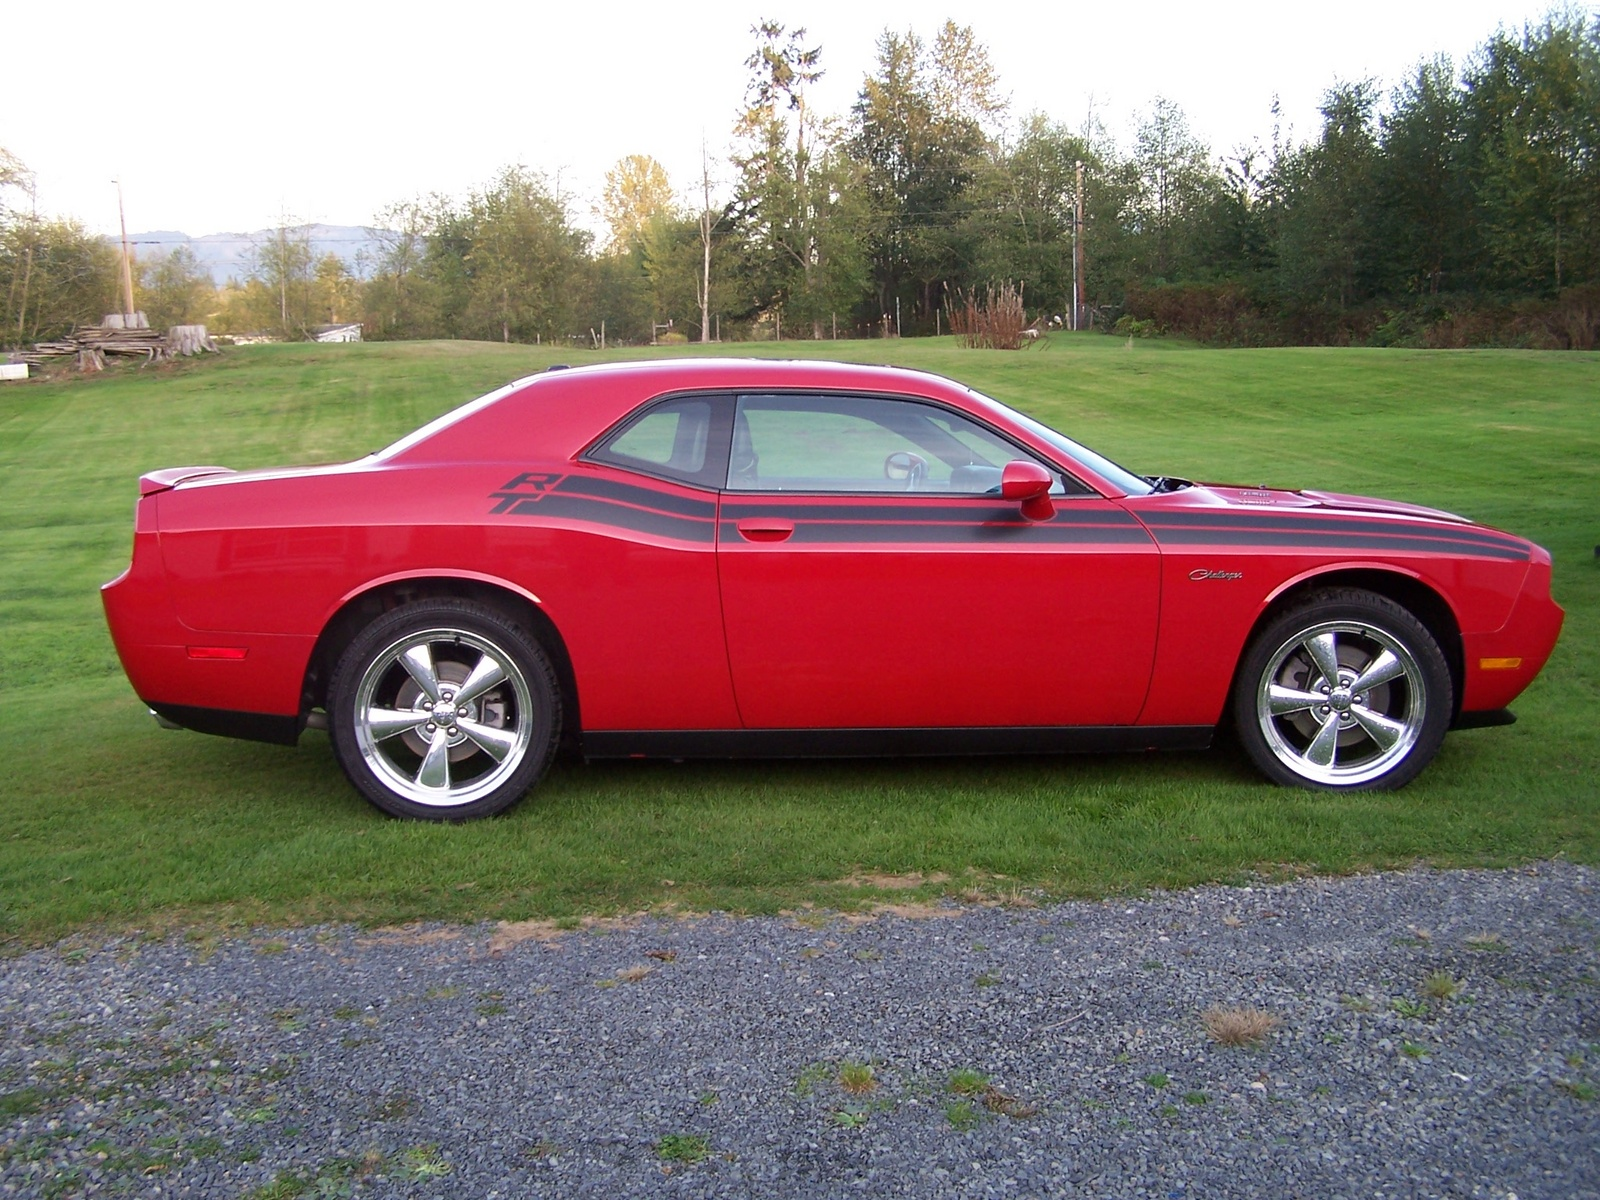 2010 dodge challenger rt classic specs car autos gallery. Black Bedroom Furniture Sets. Home Design Ideas